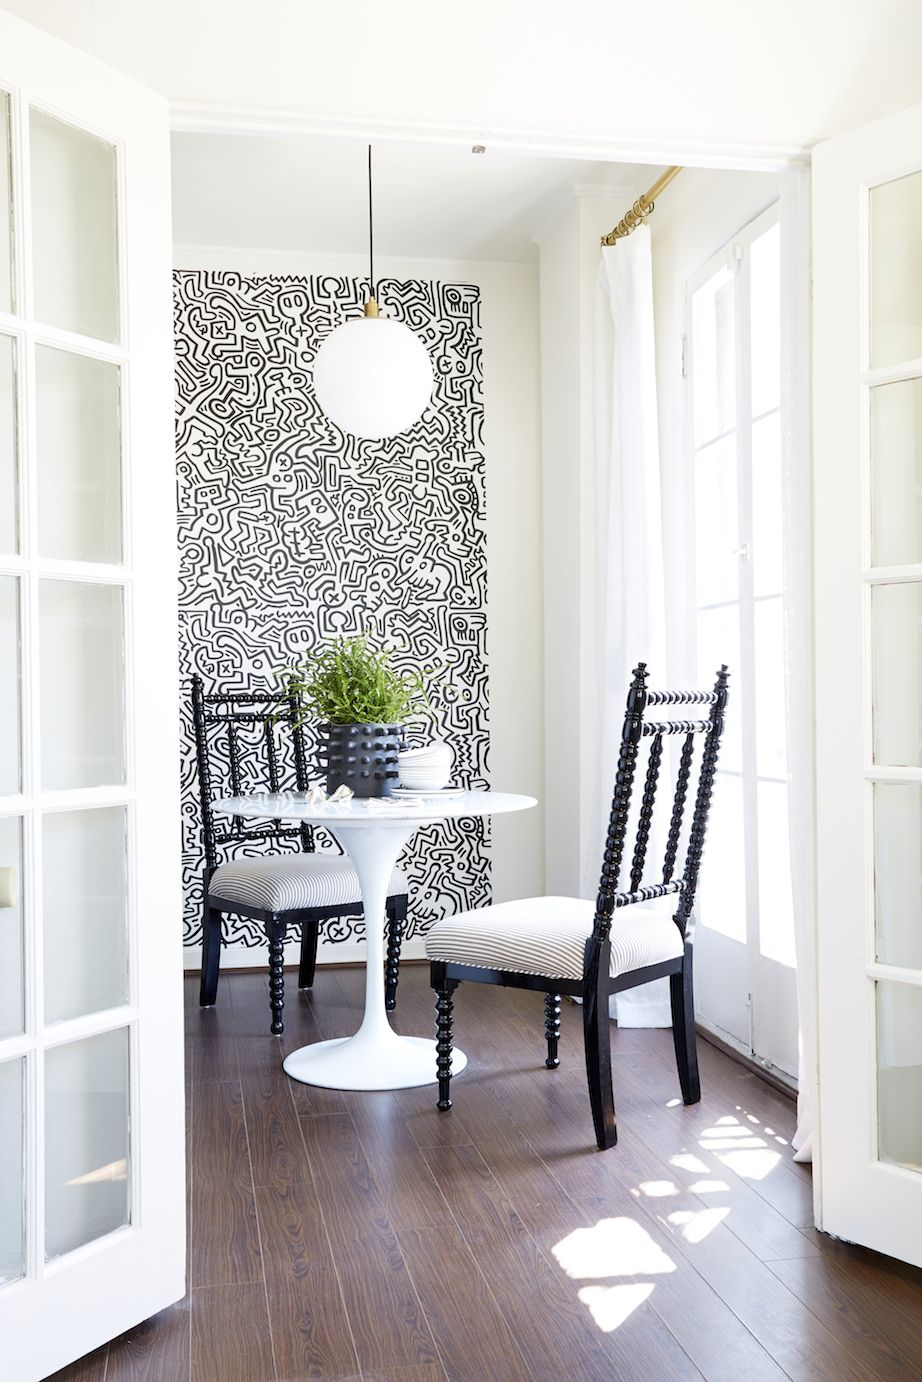 Keith Haring Wall Decals For That Extra POP In A Dining Room. Part 93